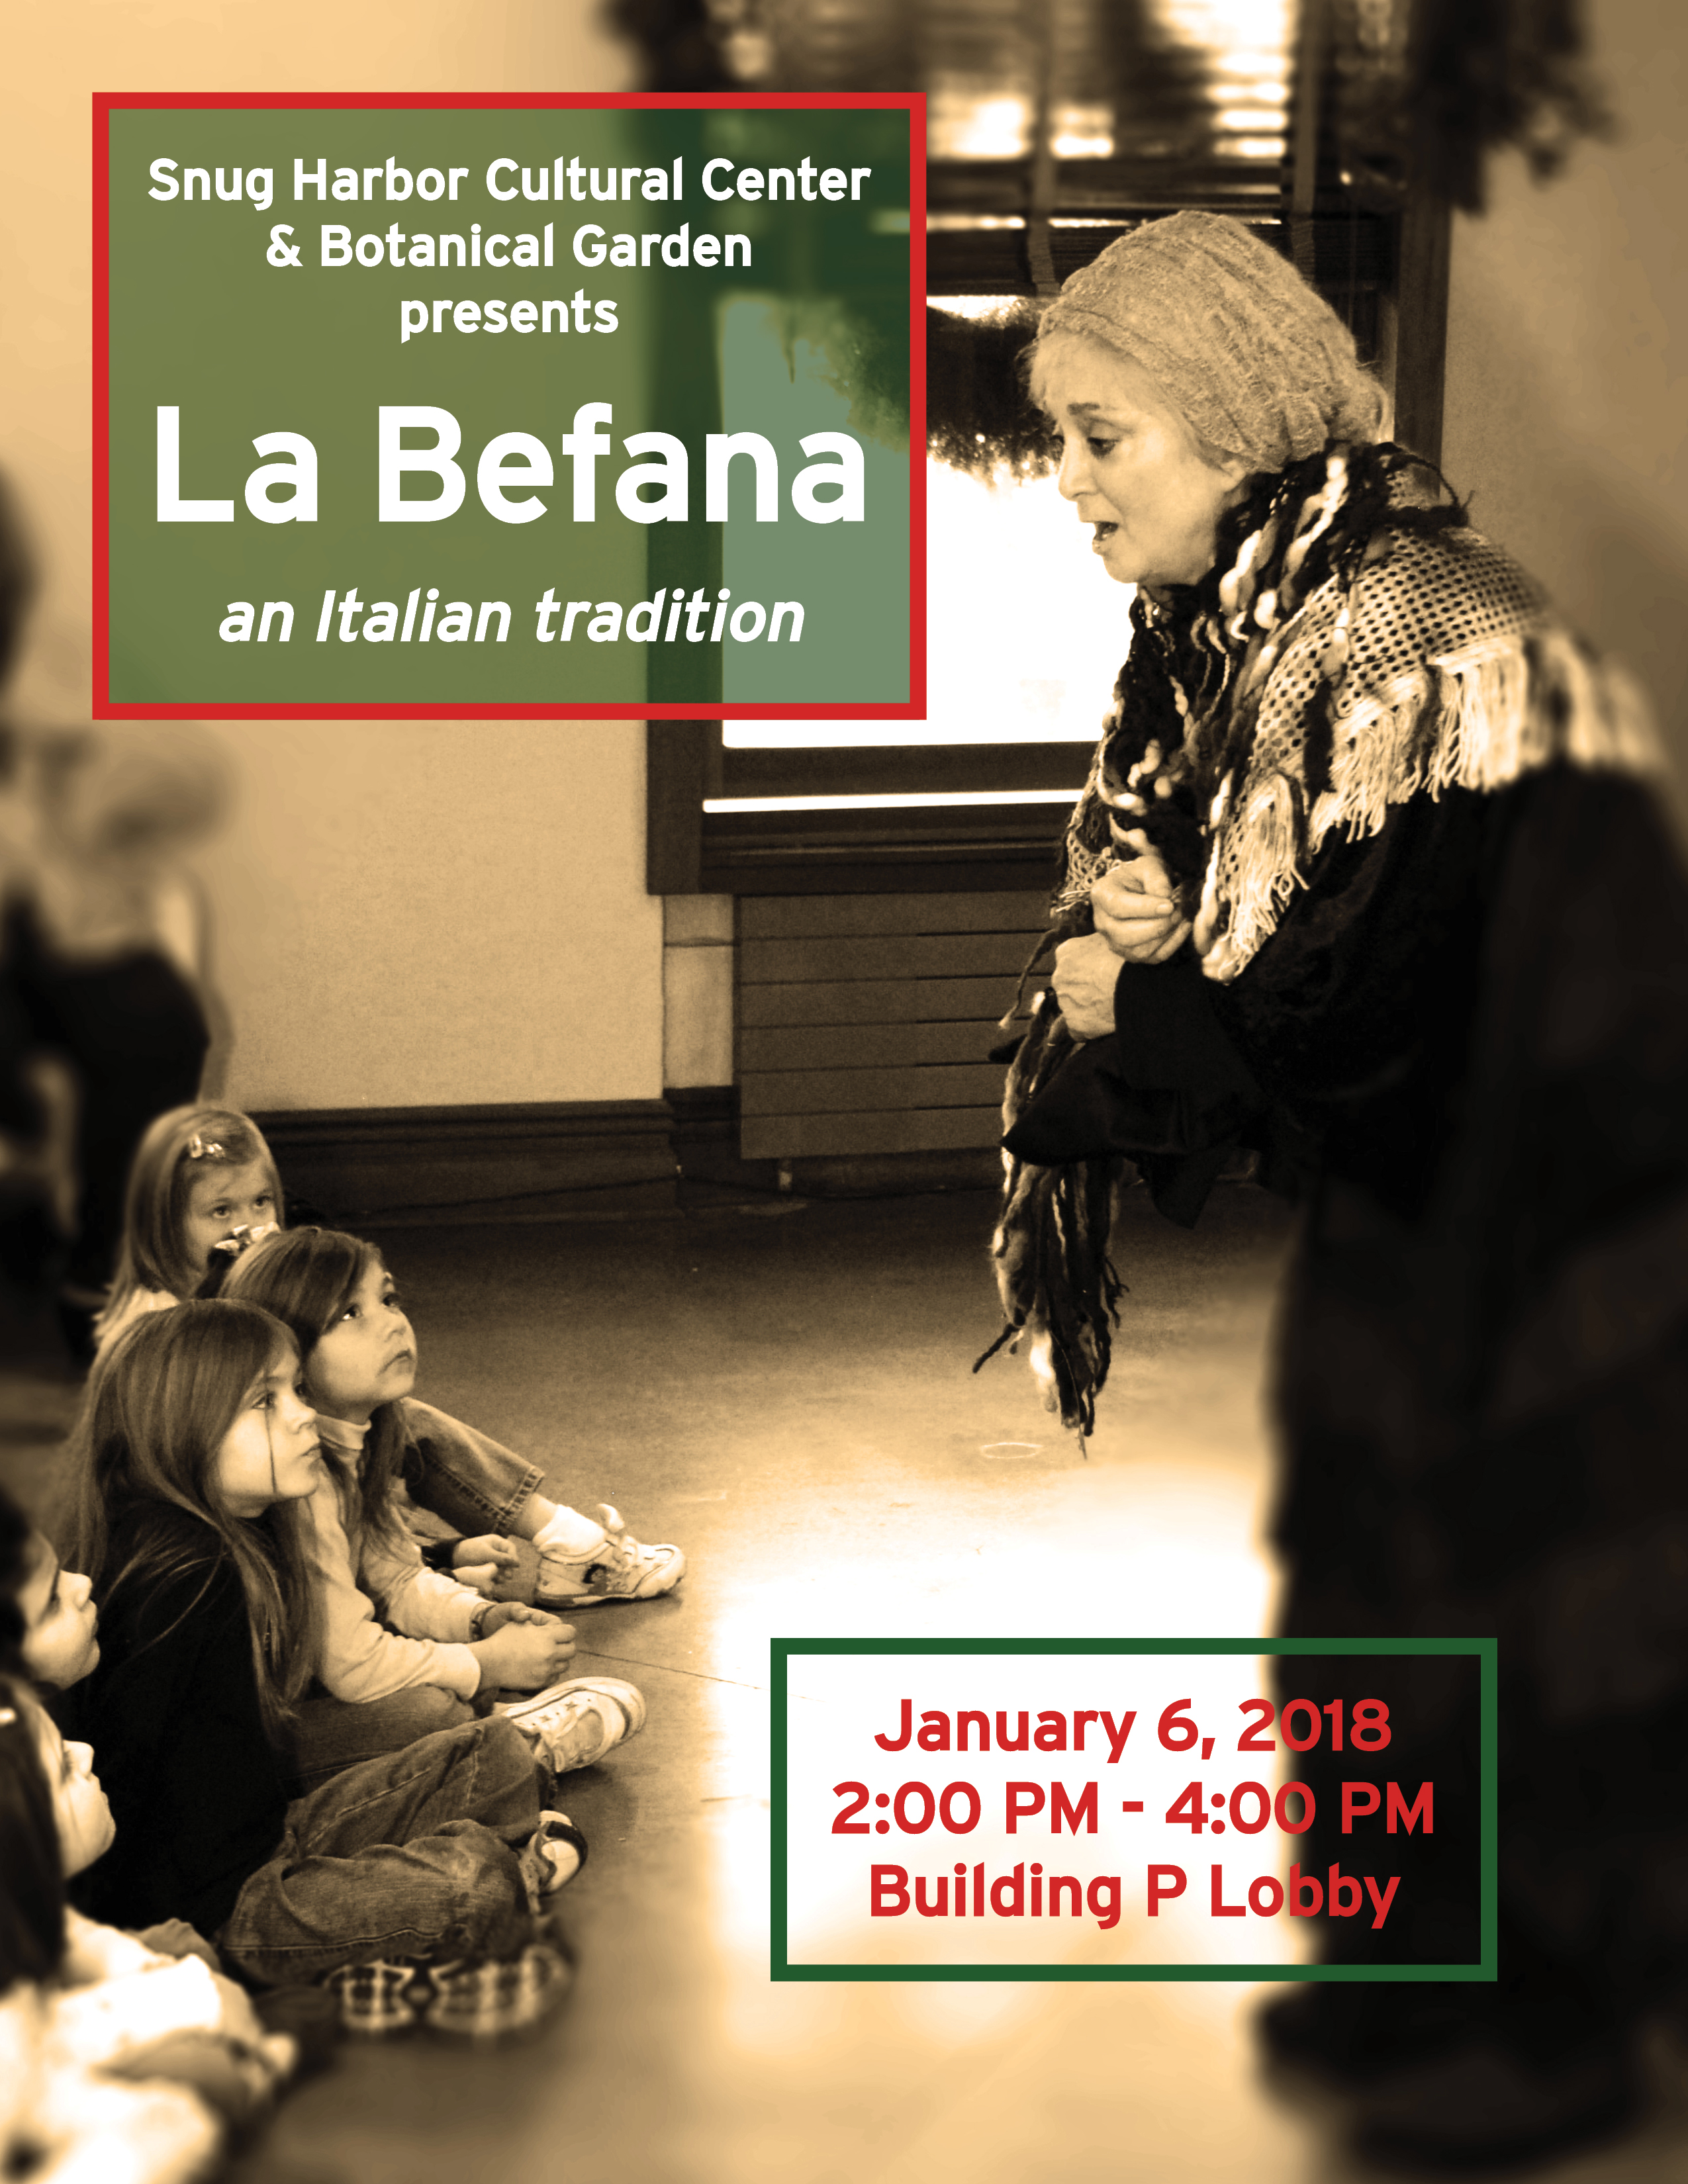 La Befana: An Italian Tradition